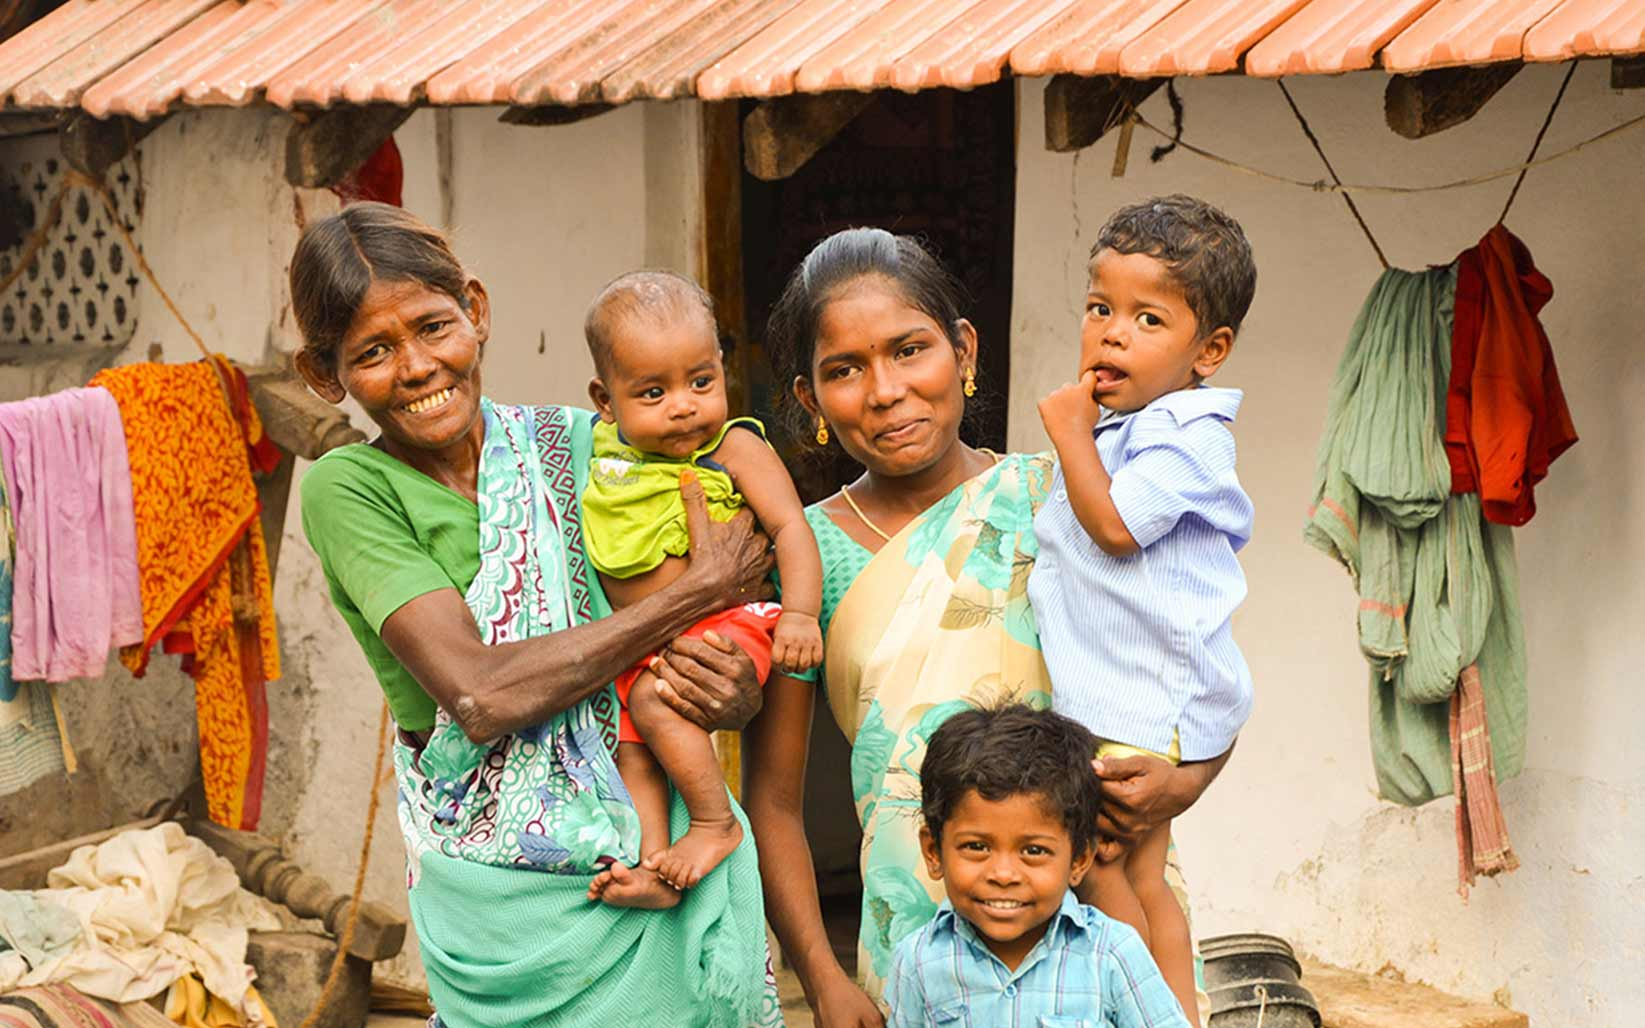 Vennila holds her son while standing with the rest of her family